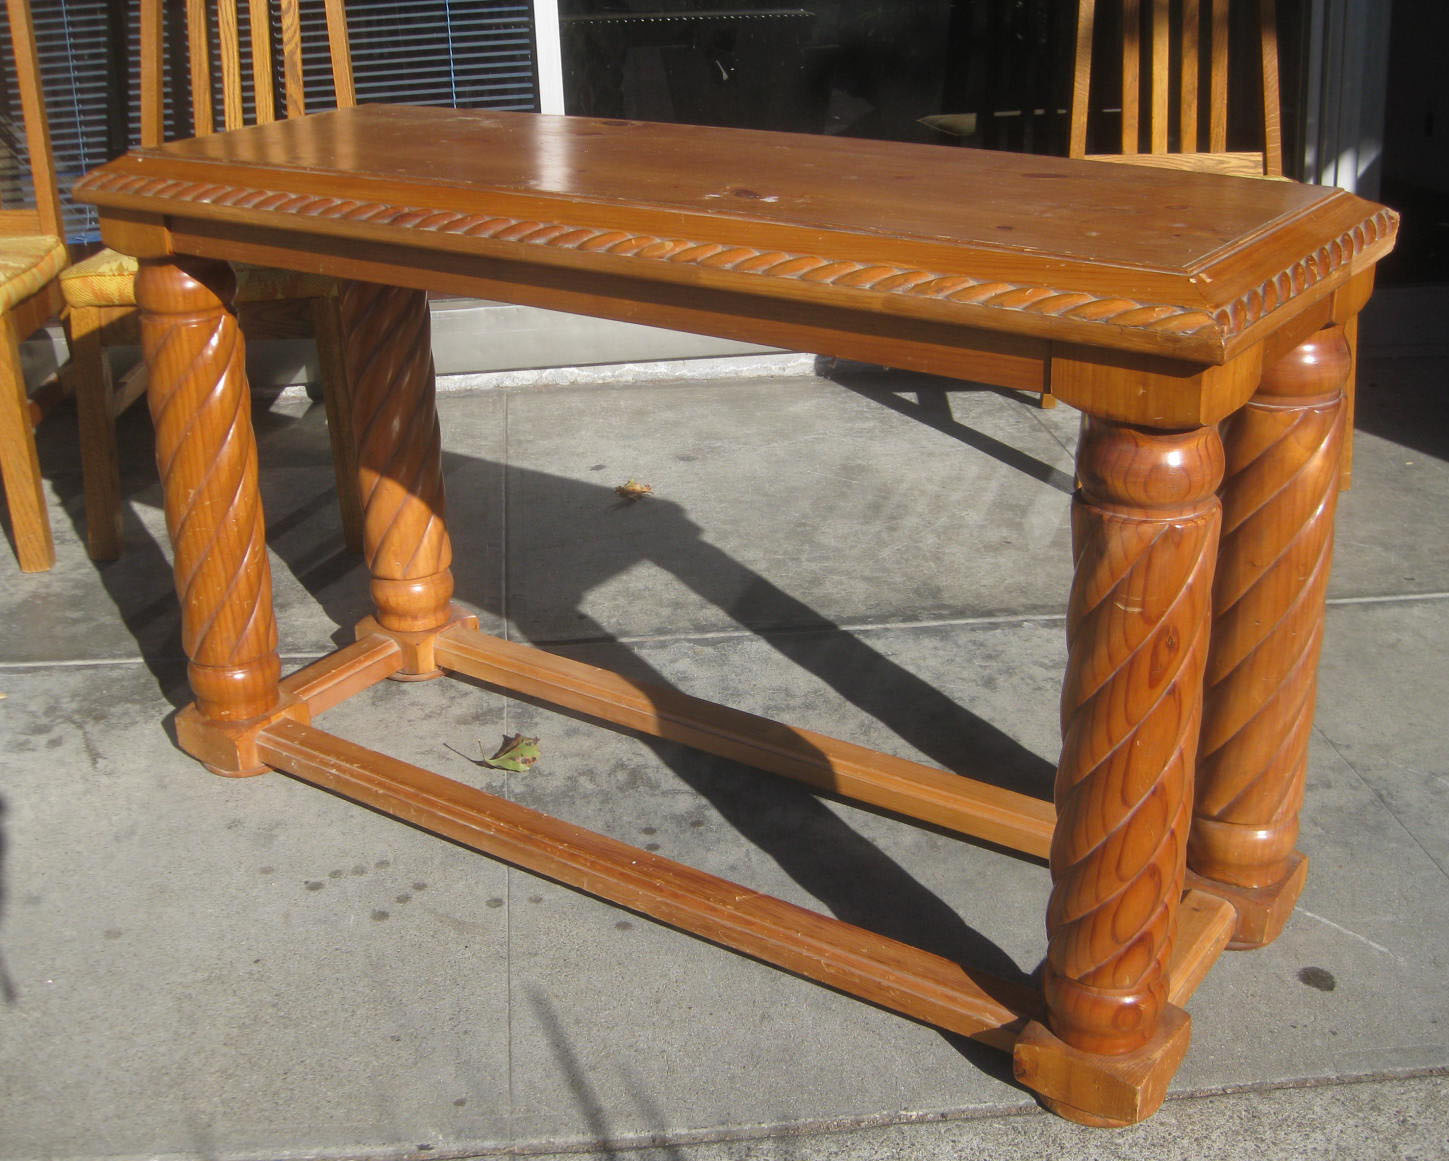 Uhuru furniture collectibles sold oak console table 25 - Table console extensible solde ...